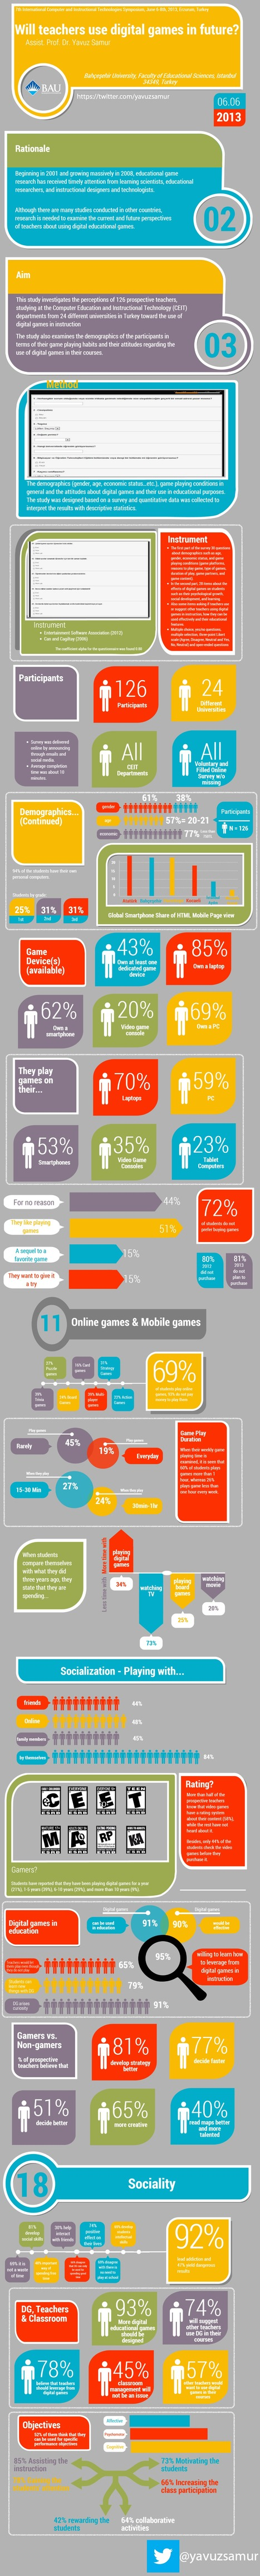 Infographic about teachers' thoughts on digital educational games | Yavuz Samur | All about educational technology & games :) | Scoop.it